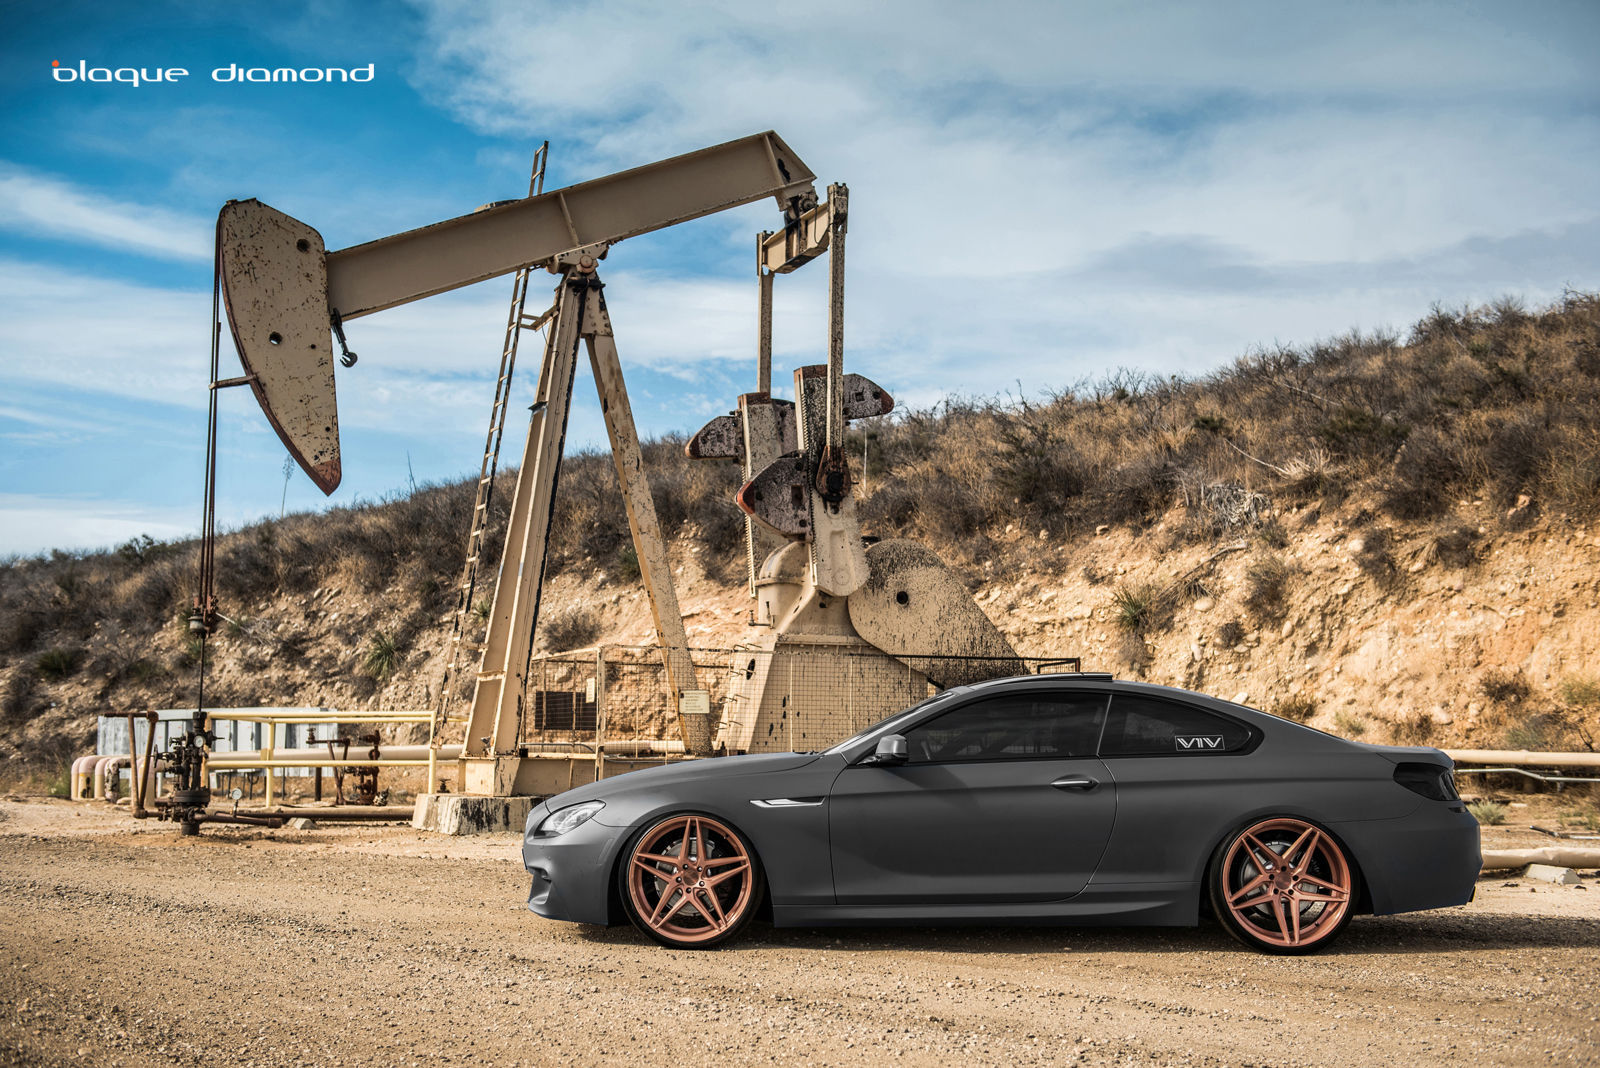 2015 BMW 6 Series Gran Coupe   2015 BMW 640i Fitted With 20 Inch BD-8's in Rose Gold